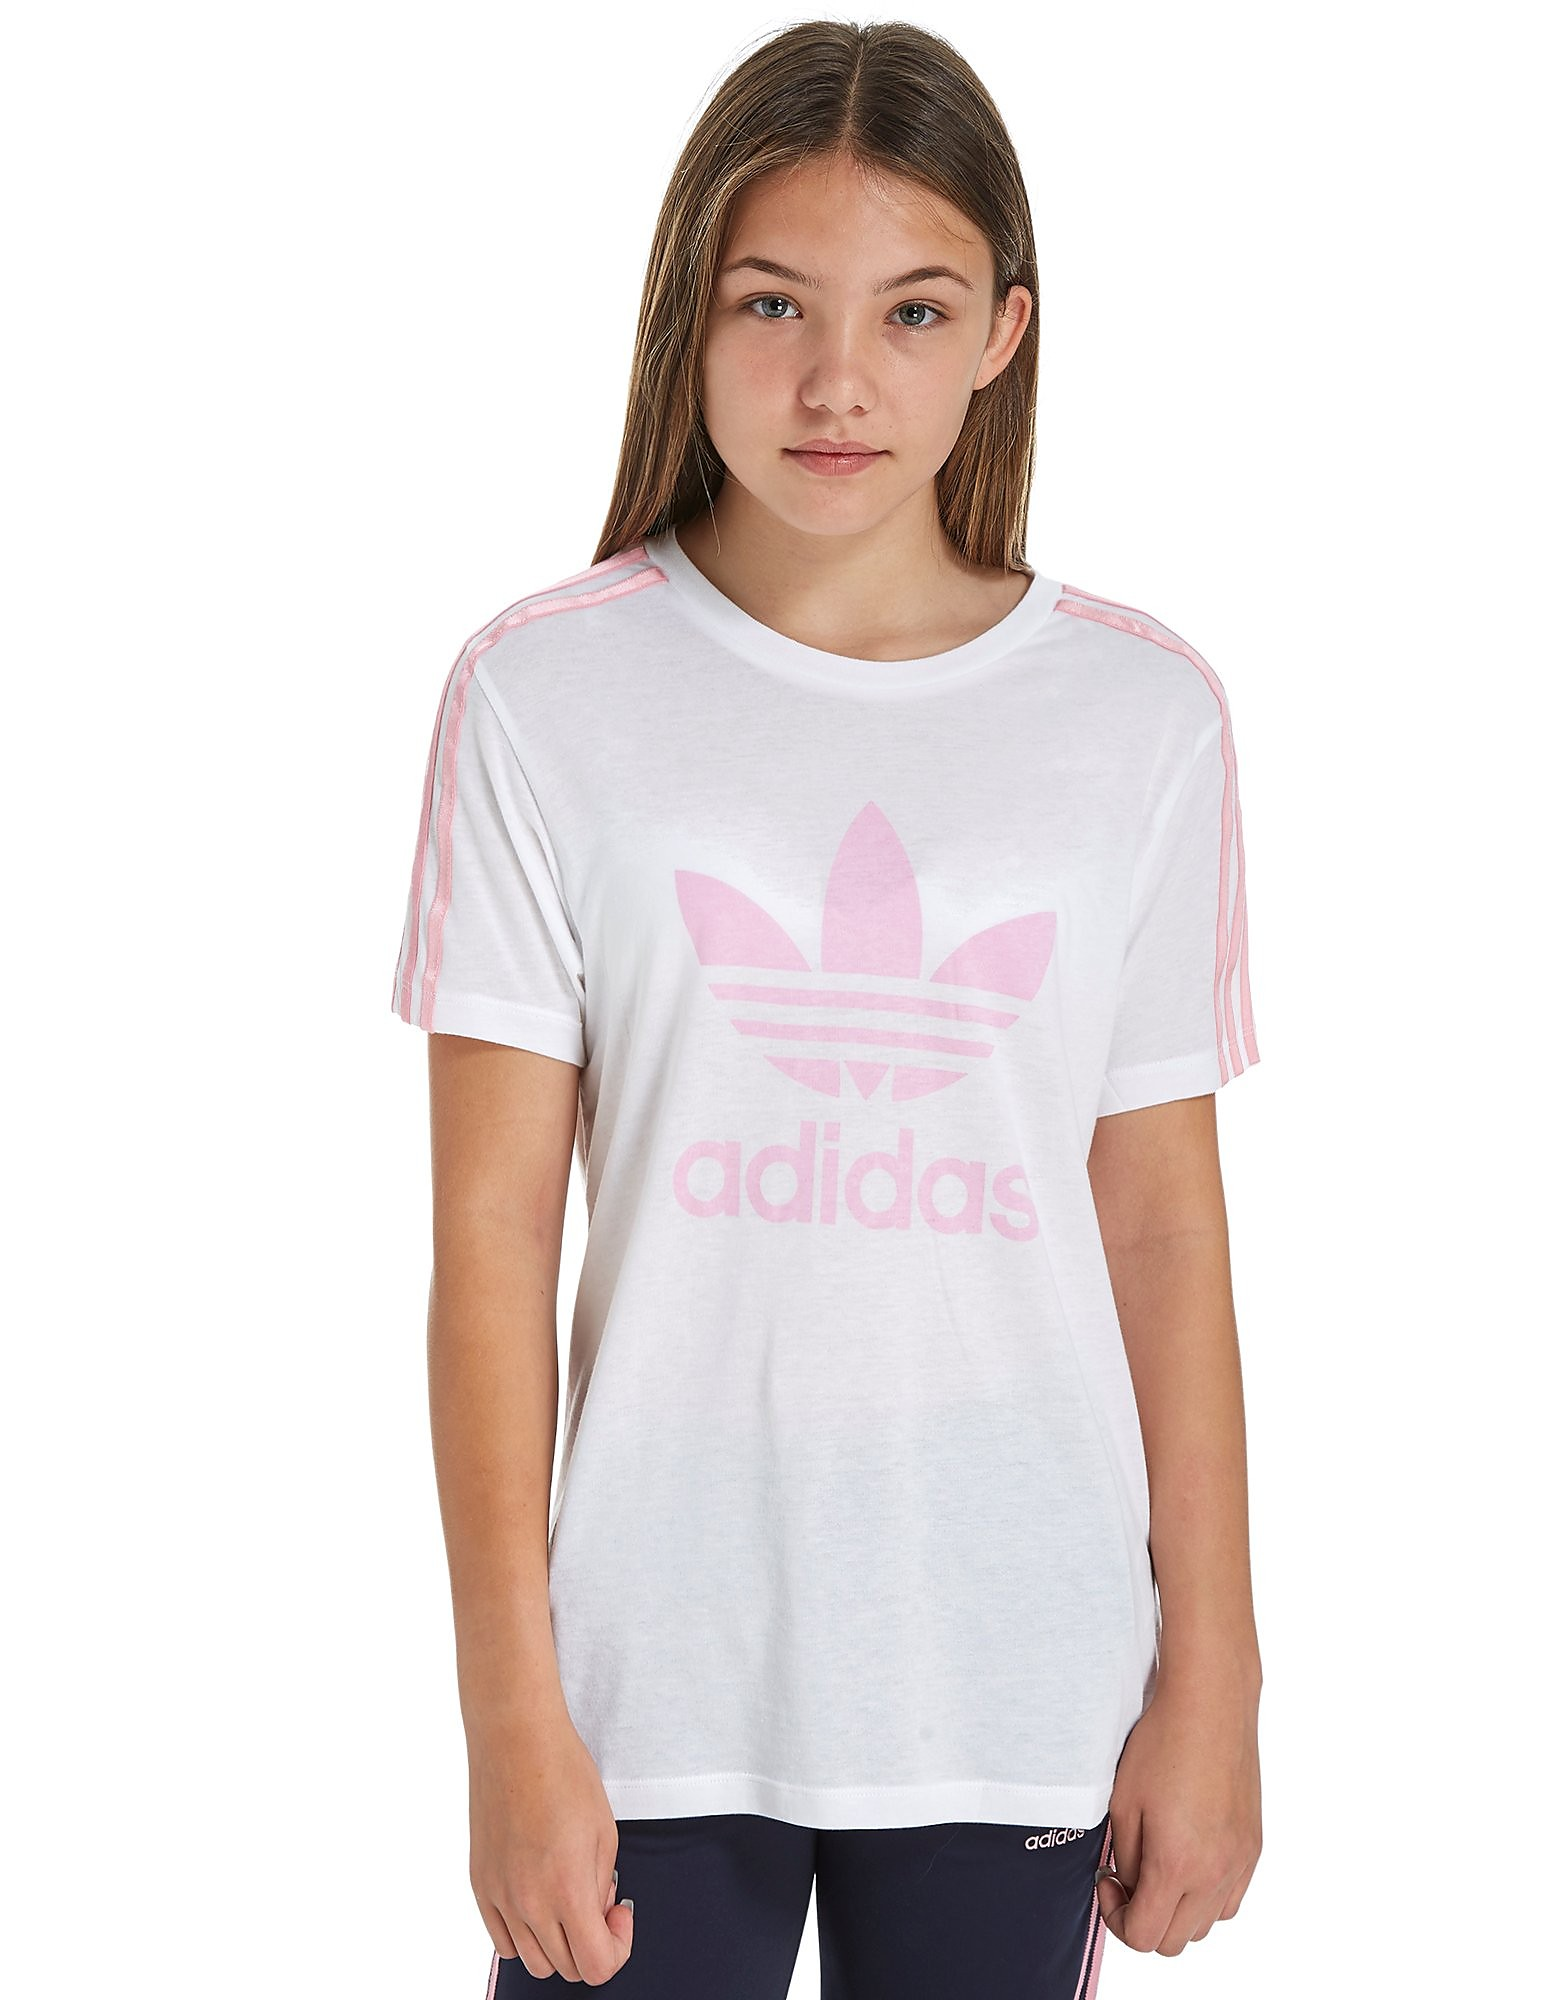 adidas Originals camiseta Girls' 3-Stripes Boyfriend júnior